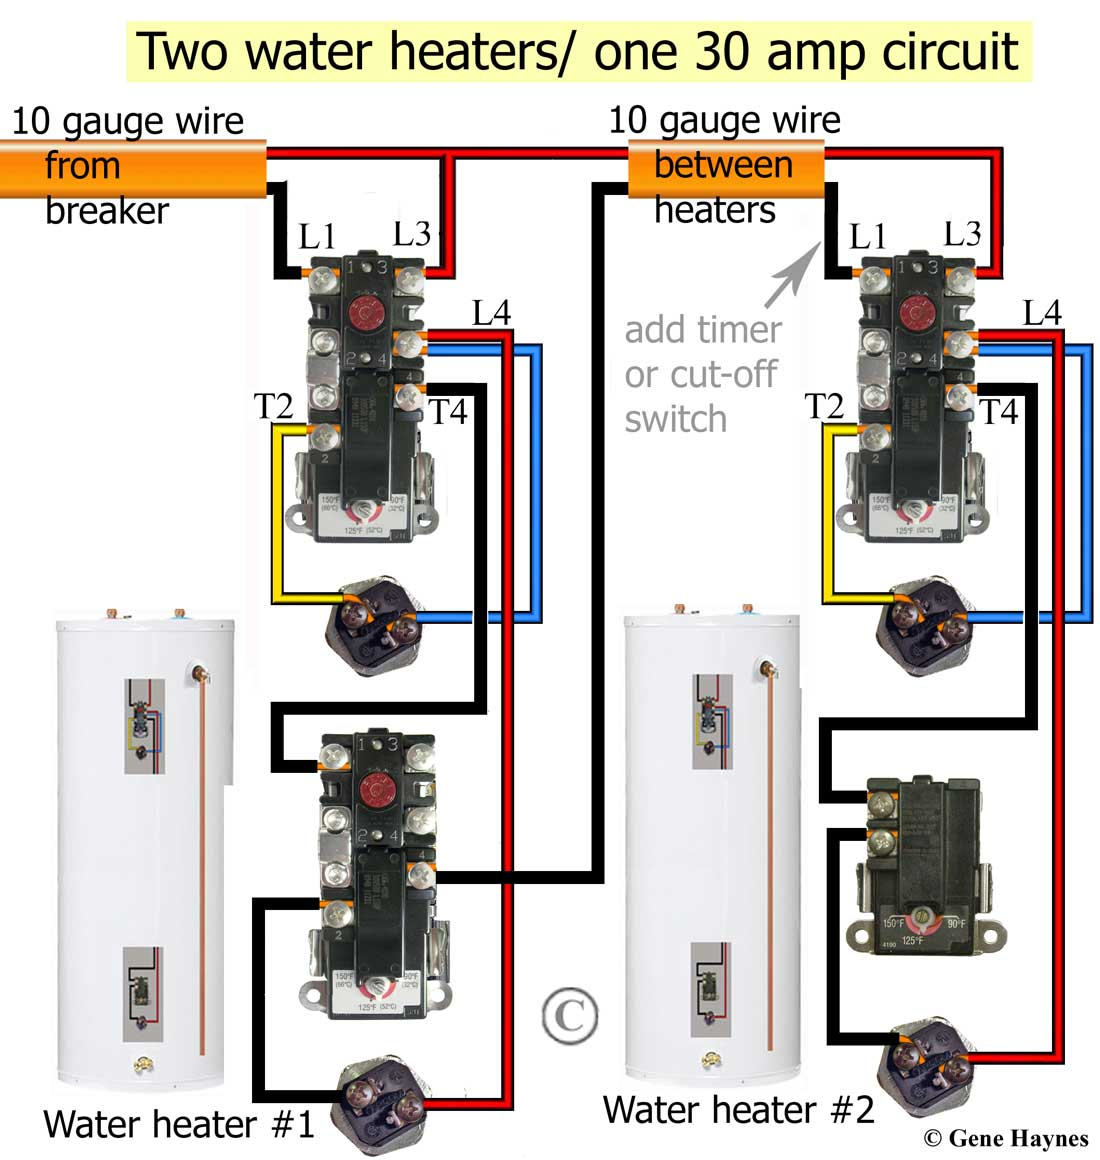 How to wire water heater thermostats simultaneous wiring will heat top of tank first redundant will turn on as soon as cold water enters tank how electric water heater works asfbconference2016 Gallery